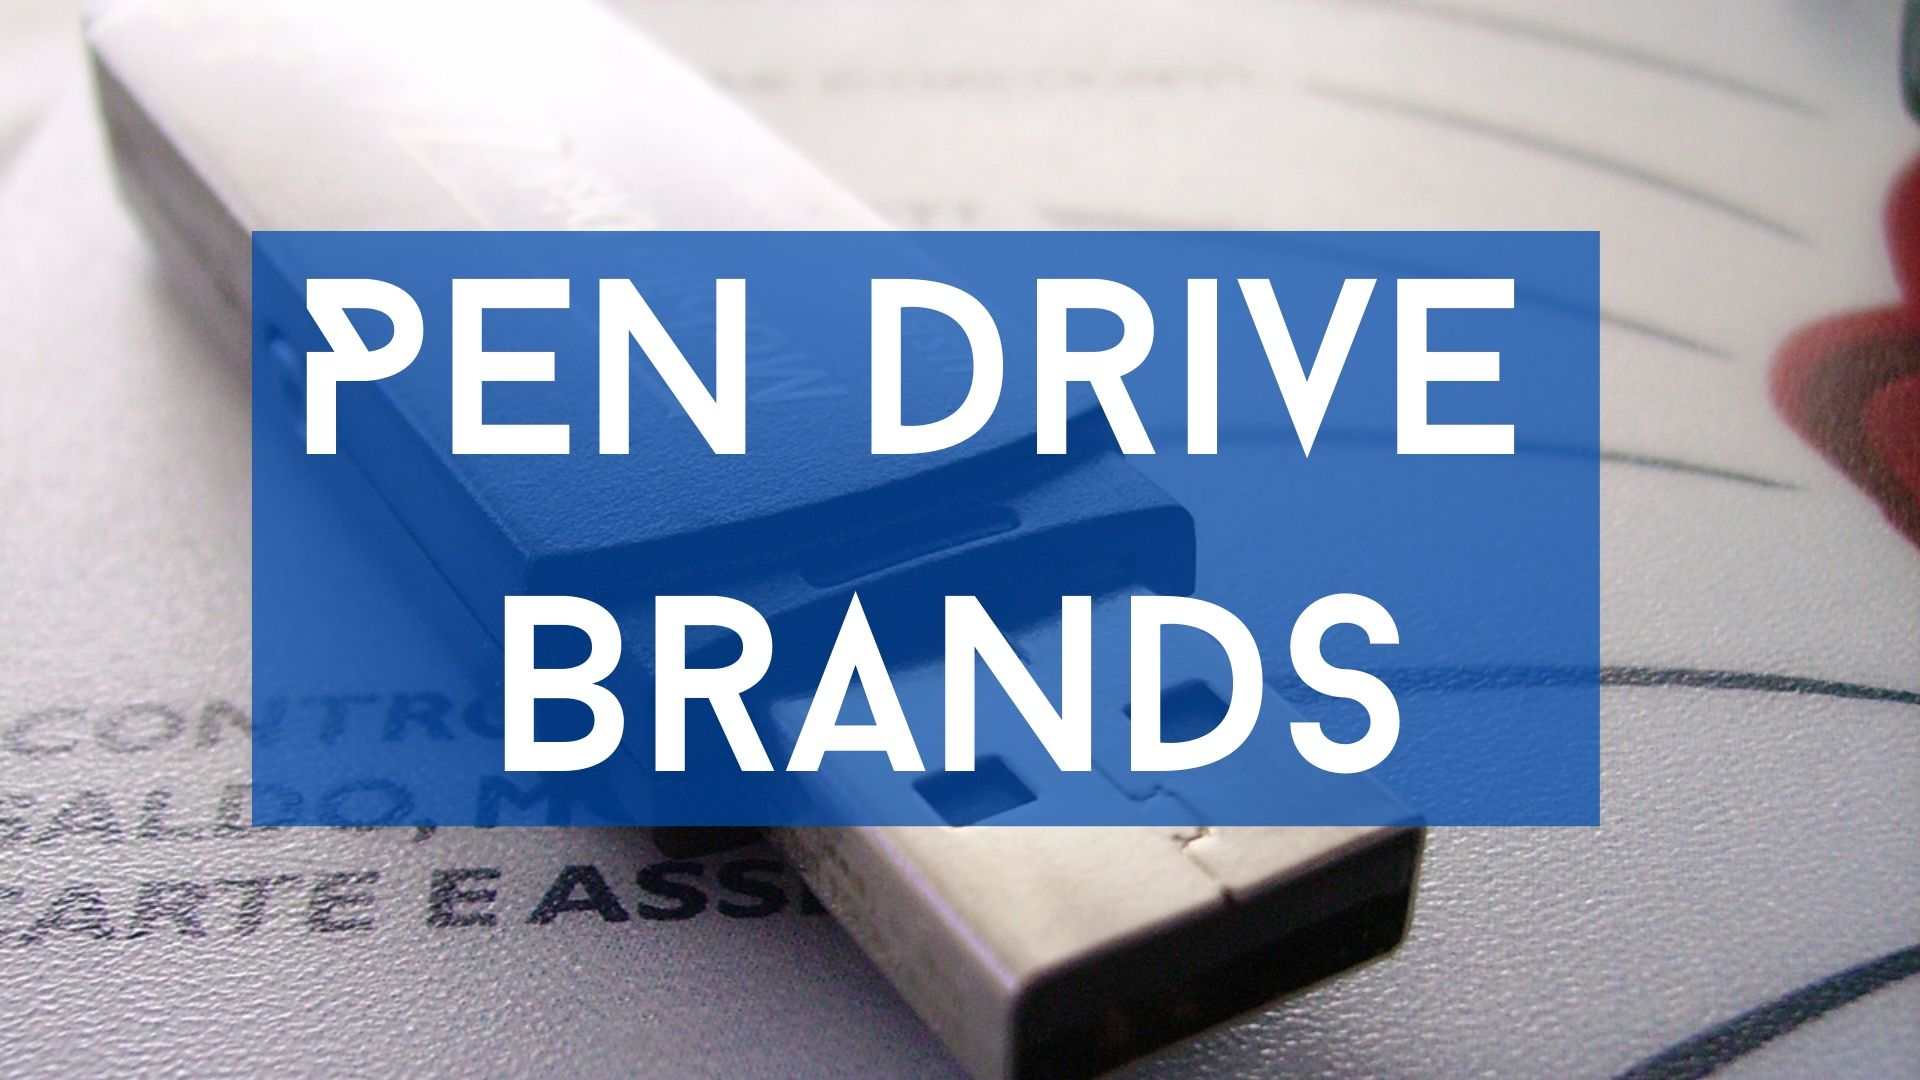 Pen Drive Brands in india